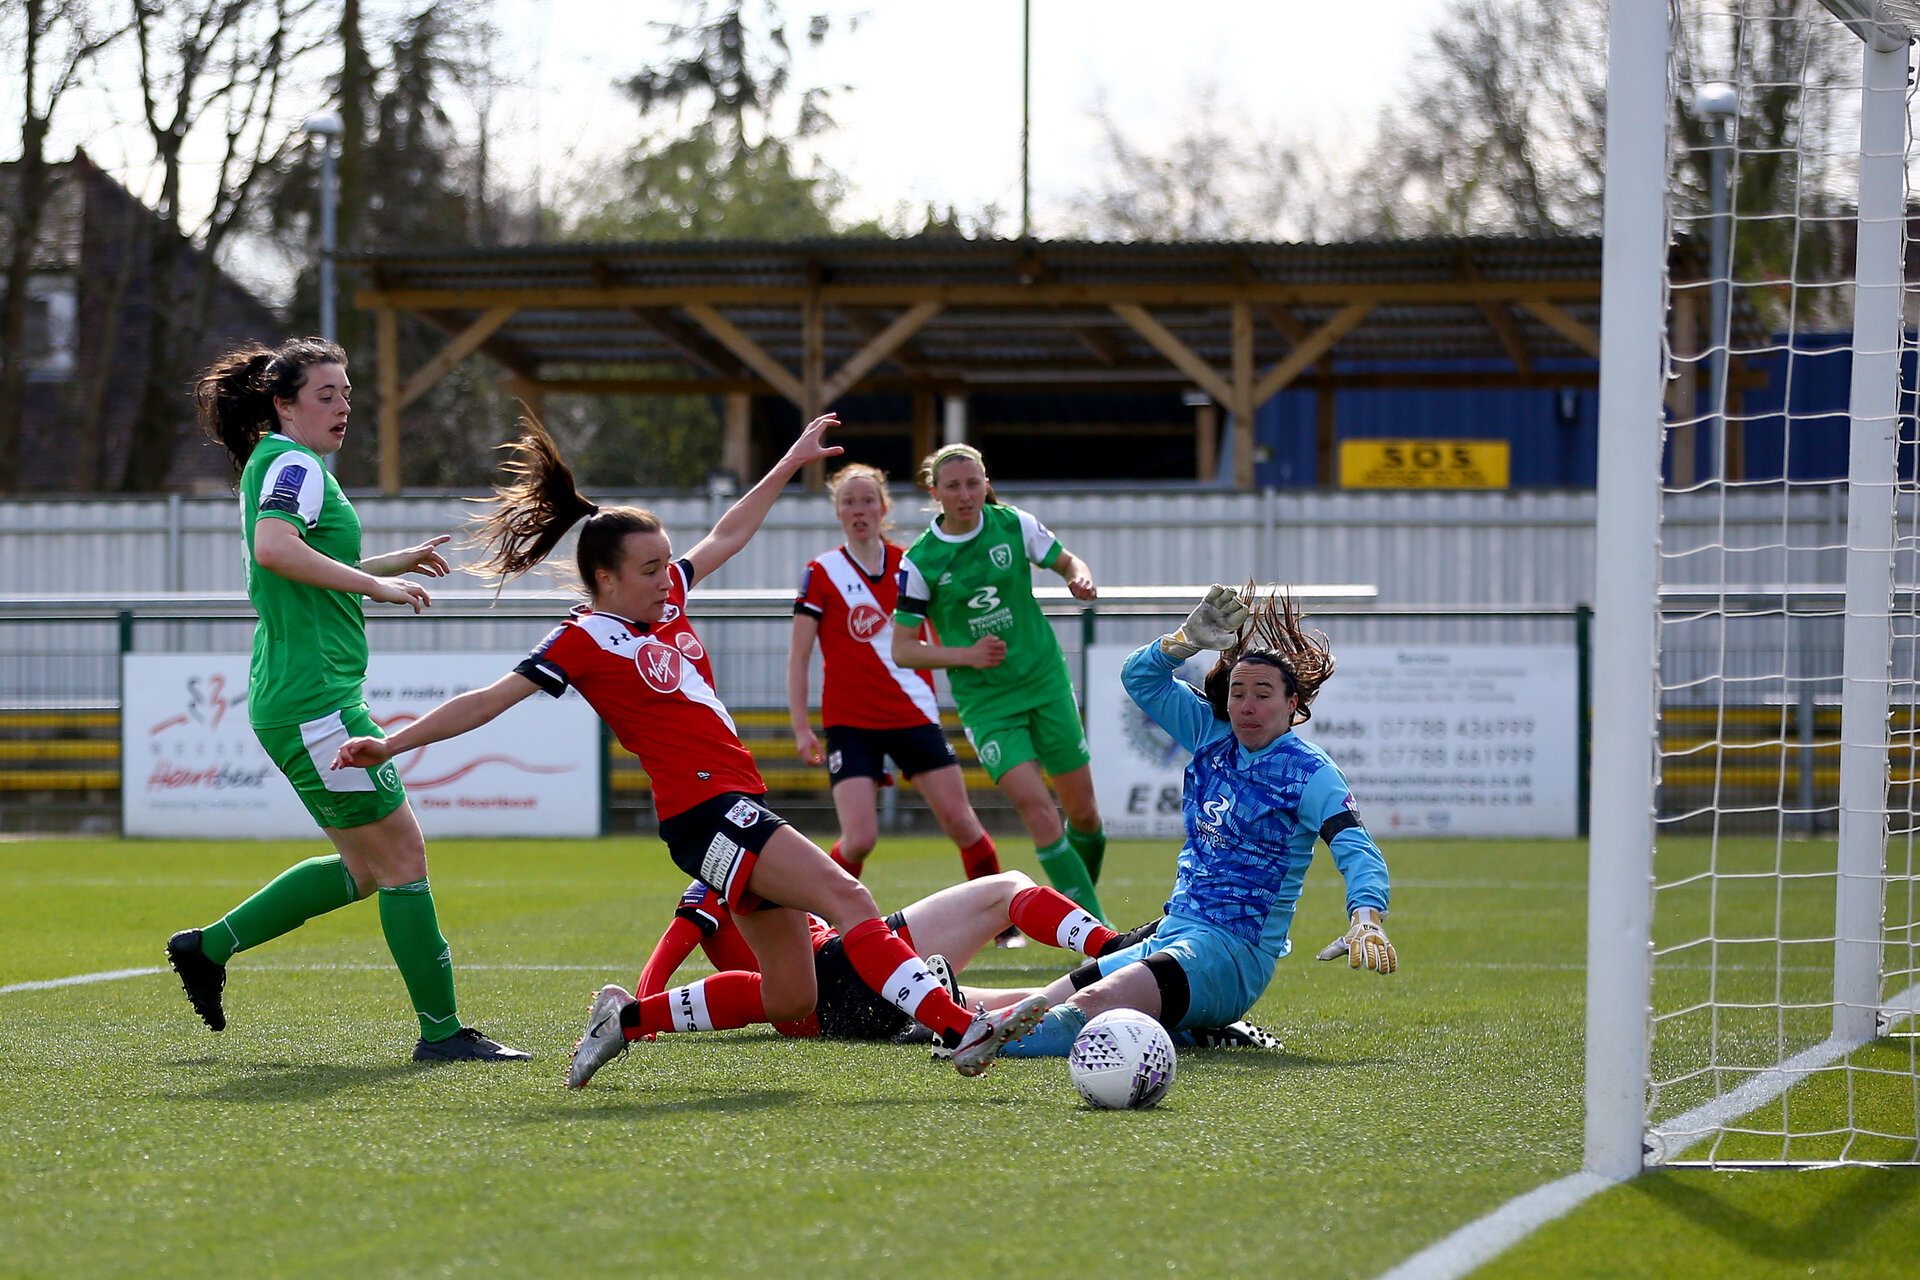 SOUTHAMPTON, ENGLAND - APRIL 11: Sophia Pharoah scores the second goal for Southampton during the Vitality Women's FA Cup third round match between Southampton Women and Yeovil United Women at The Snows Stadium on April 11, 2021 in Southampton, England. (Photo by Isabelle Field/Southampton FC via Getty Images)